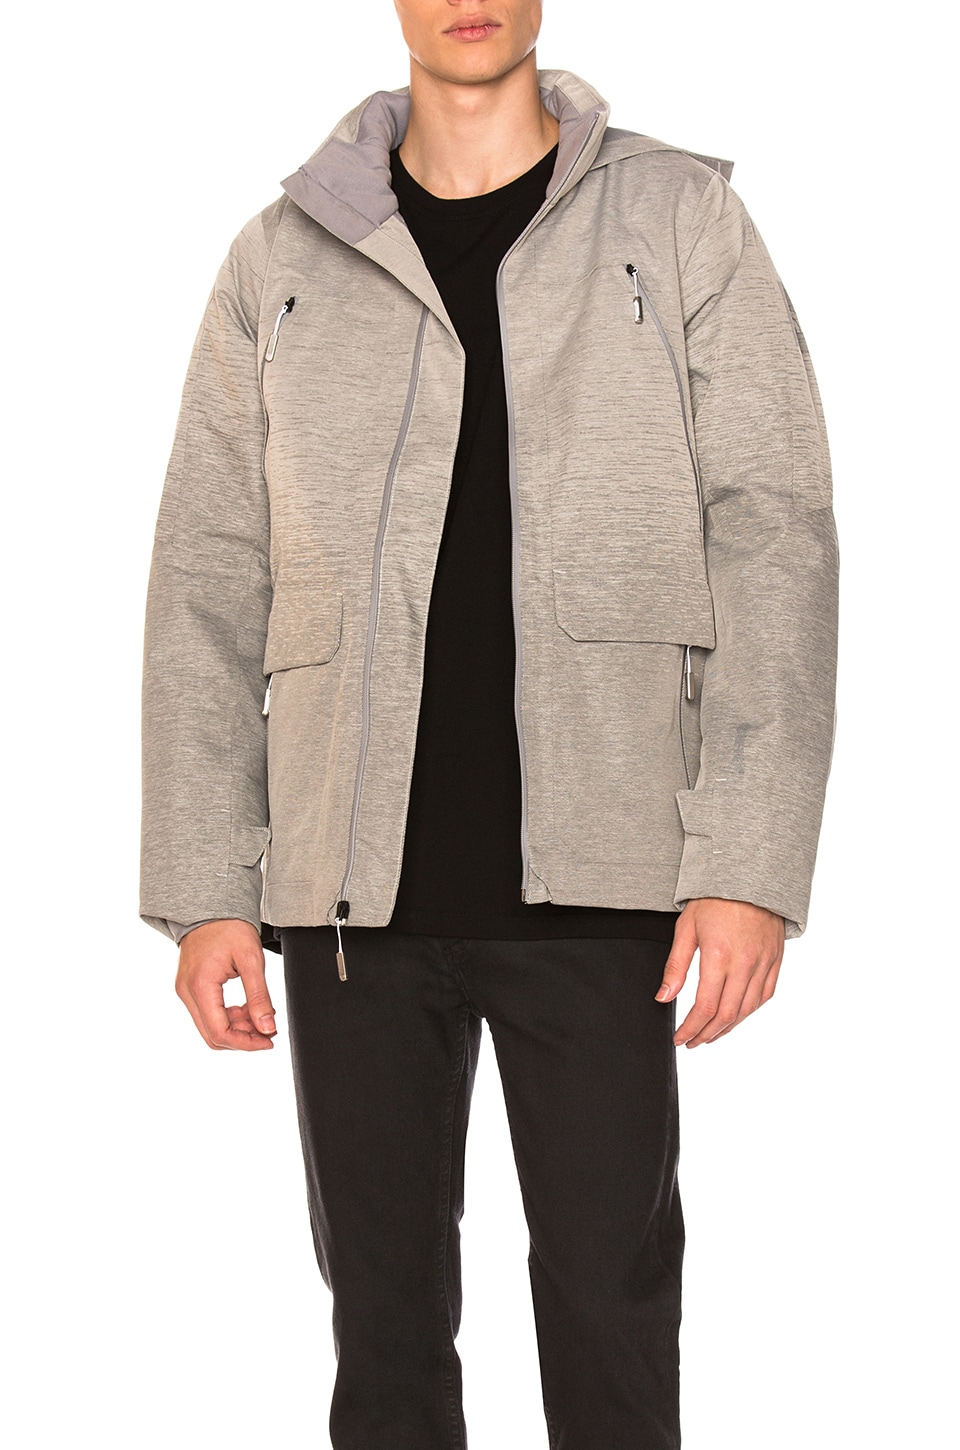 The North Face Cryos GTX Jacket in Mid Grey Gradient Jacquard